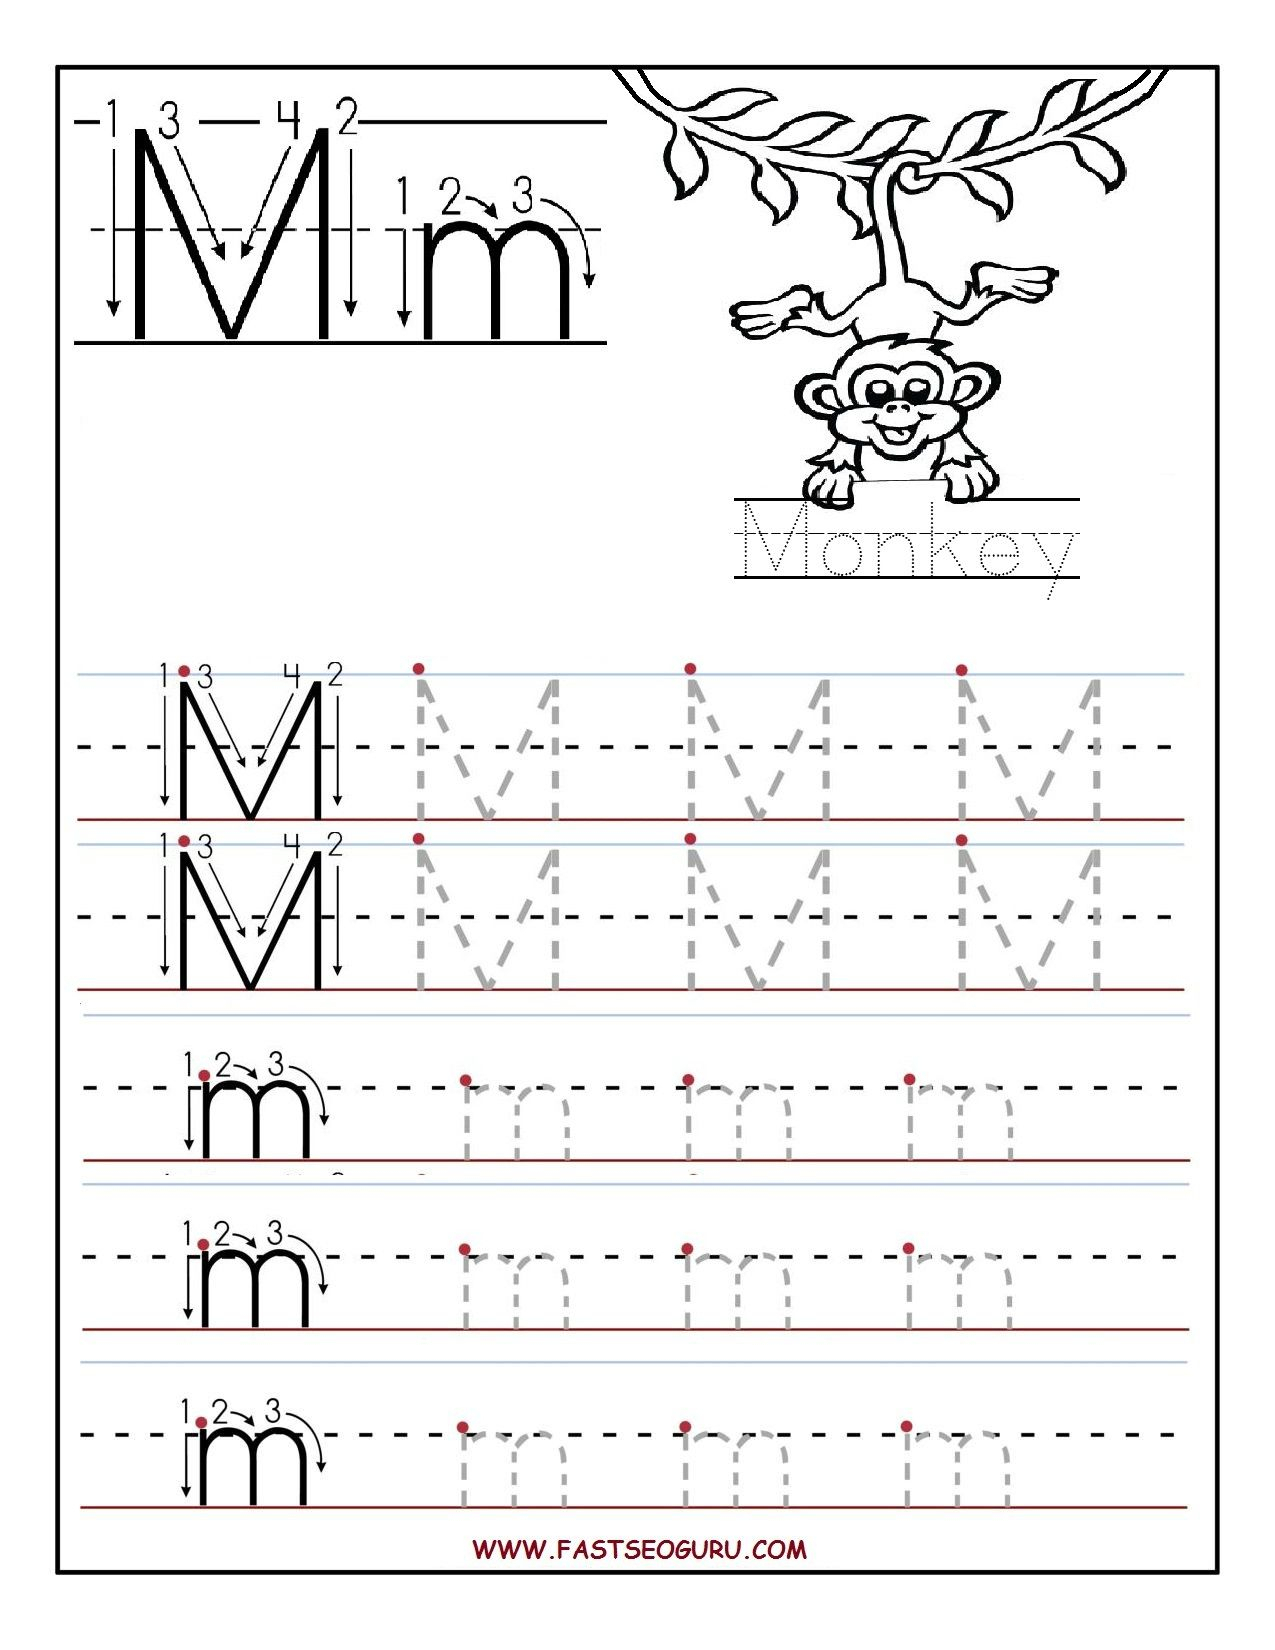 Printable Preschool Worksheets Tracing Letters